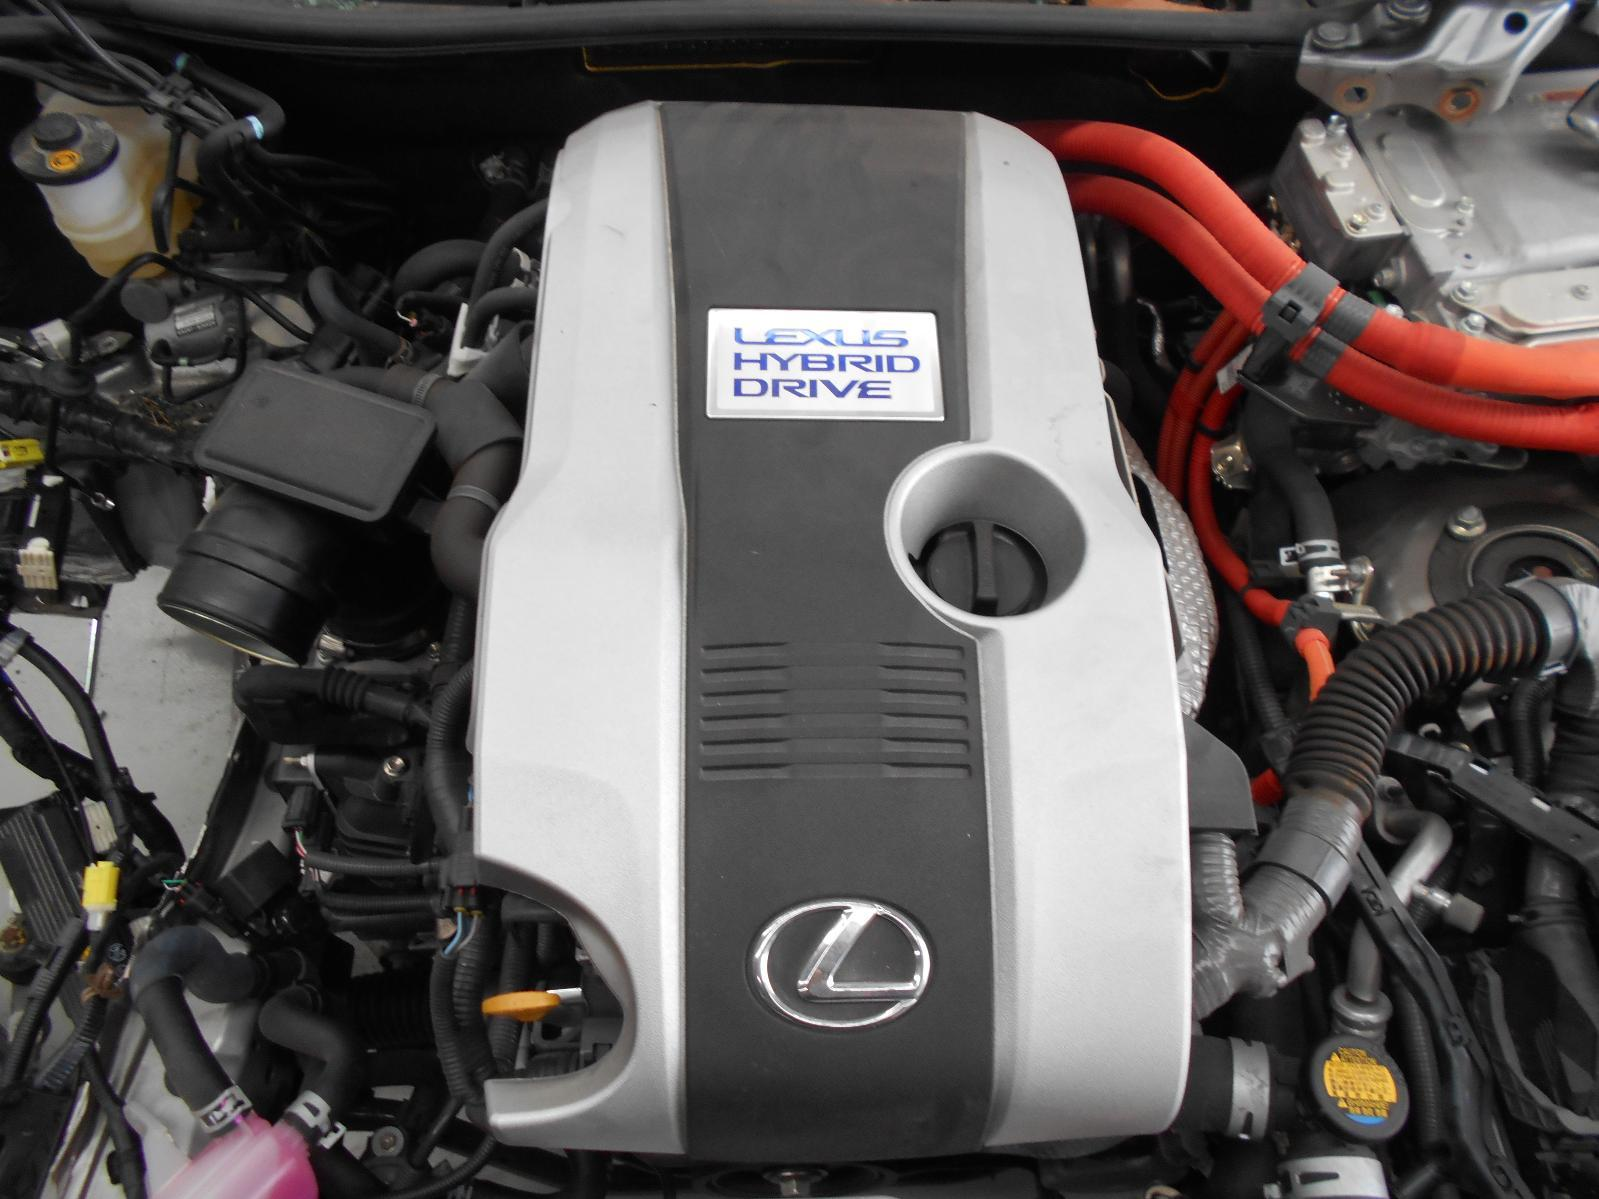 LEXUS IS SERIES, Engine, IS300h, PETROL, 2.5, 2AR-FSE, AVE30R, 04/13-